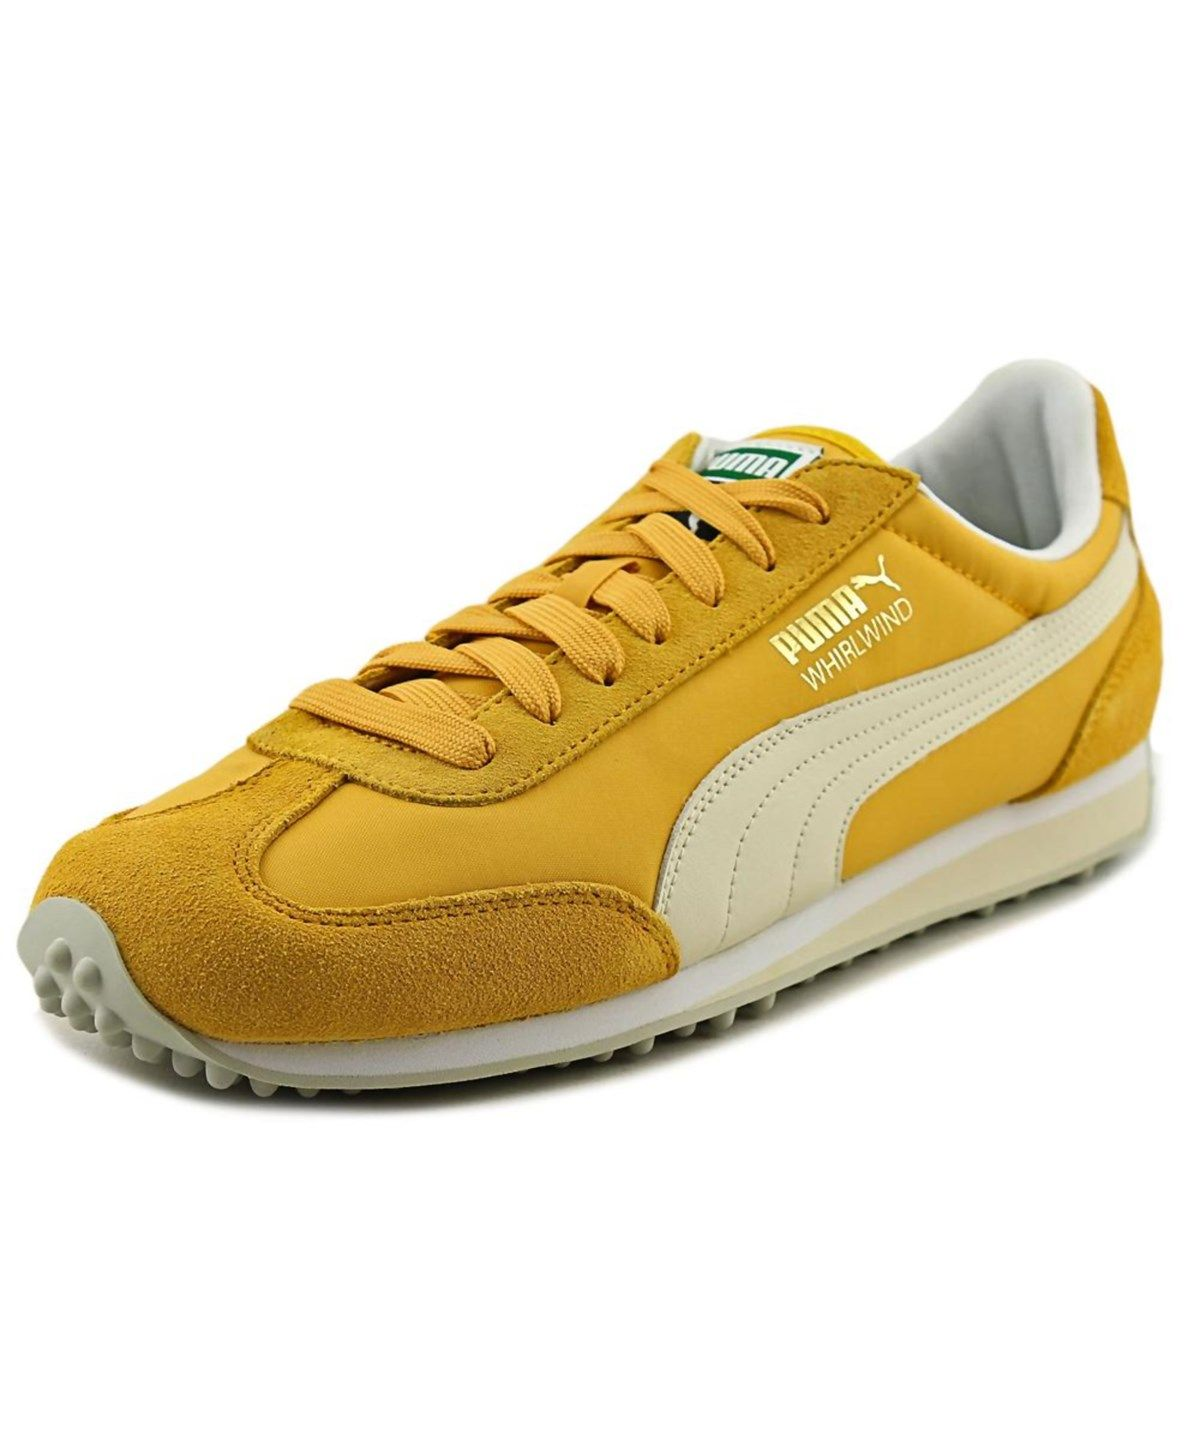 47ed8fb6c5f2da PUMA Puma Whirlwind Classic Suede Fashion Sneakers .  puma  shoes  sneakers